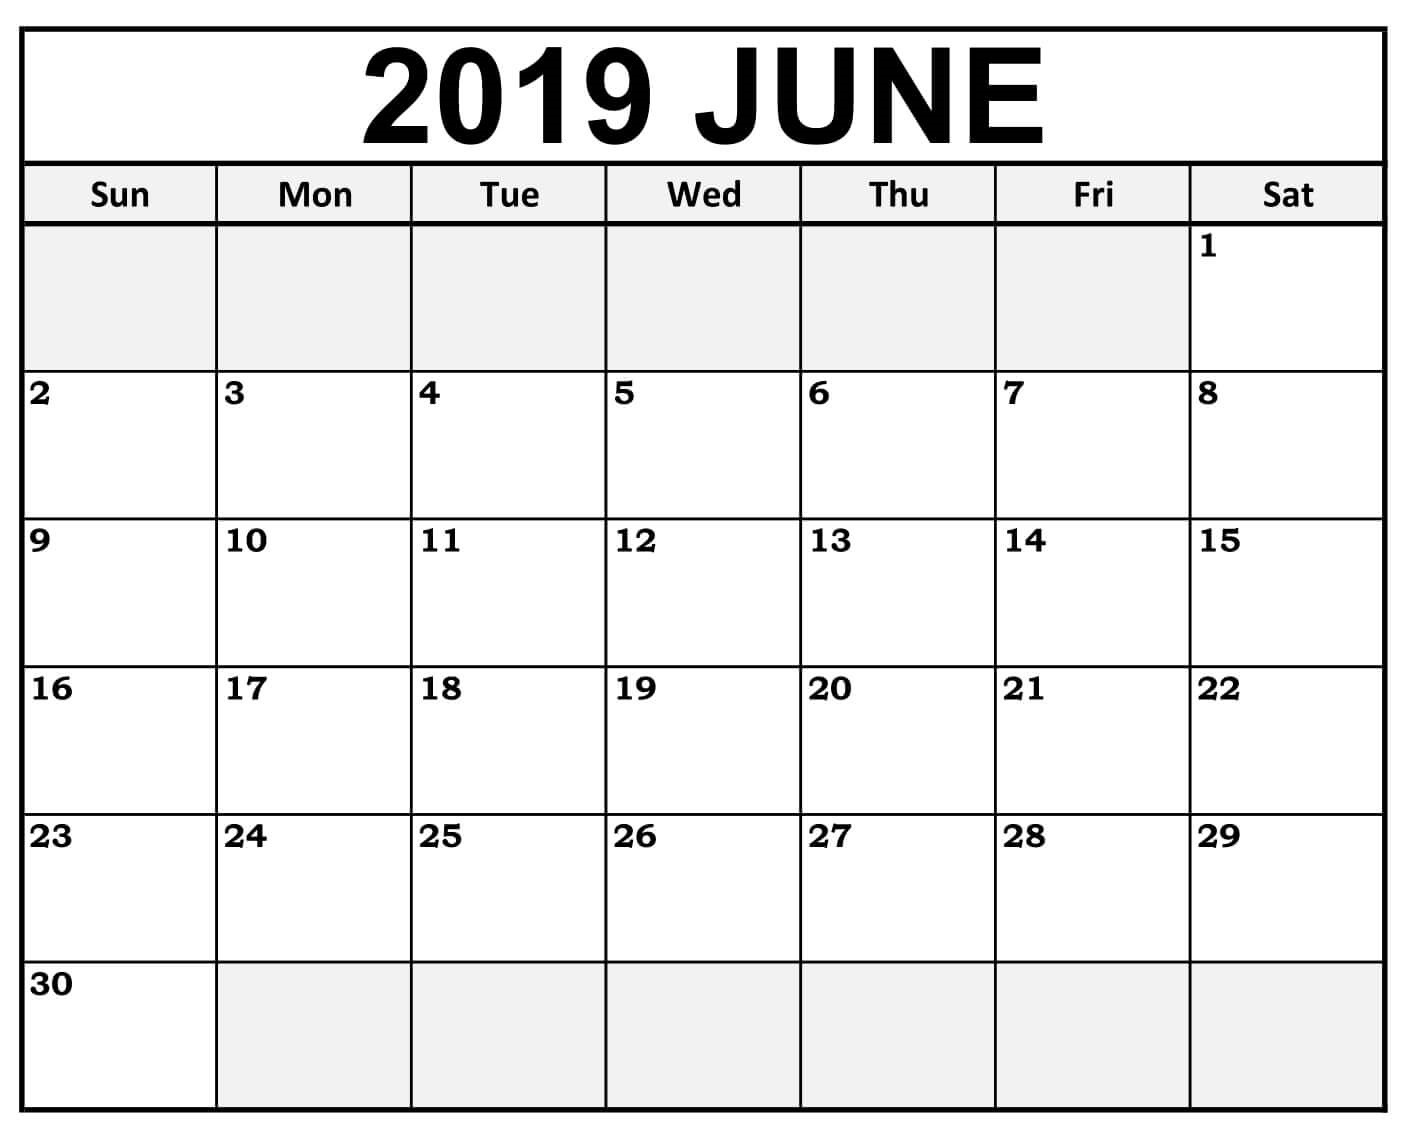 Blank June 2019 Printable Calendar.Get June 2019 Calendar Printable Blank Templates Fillable